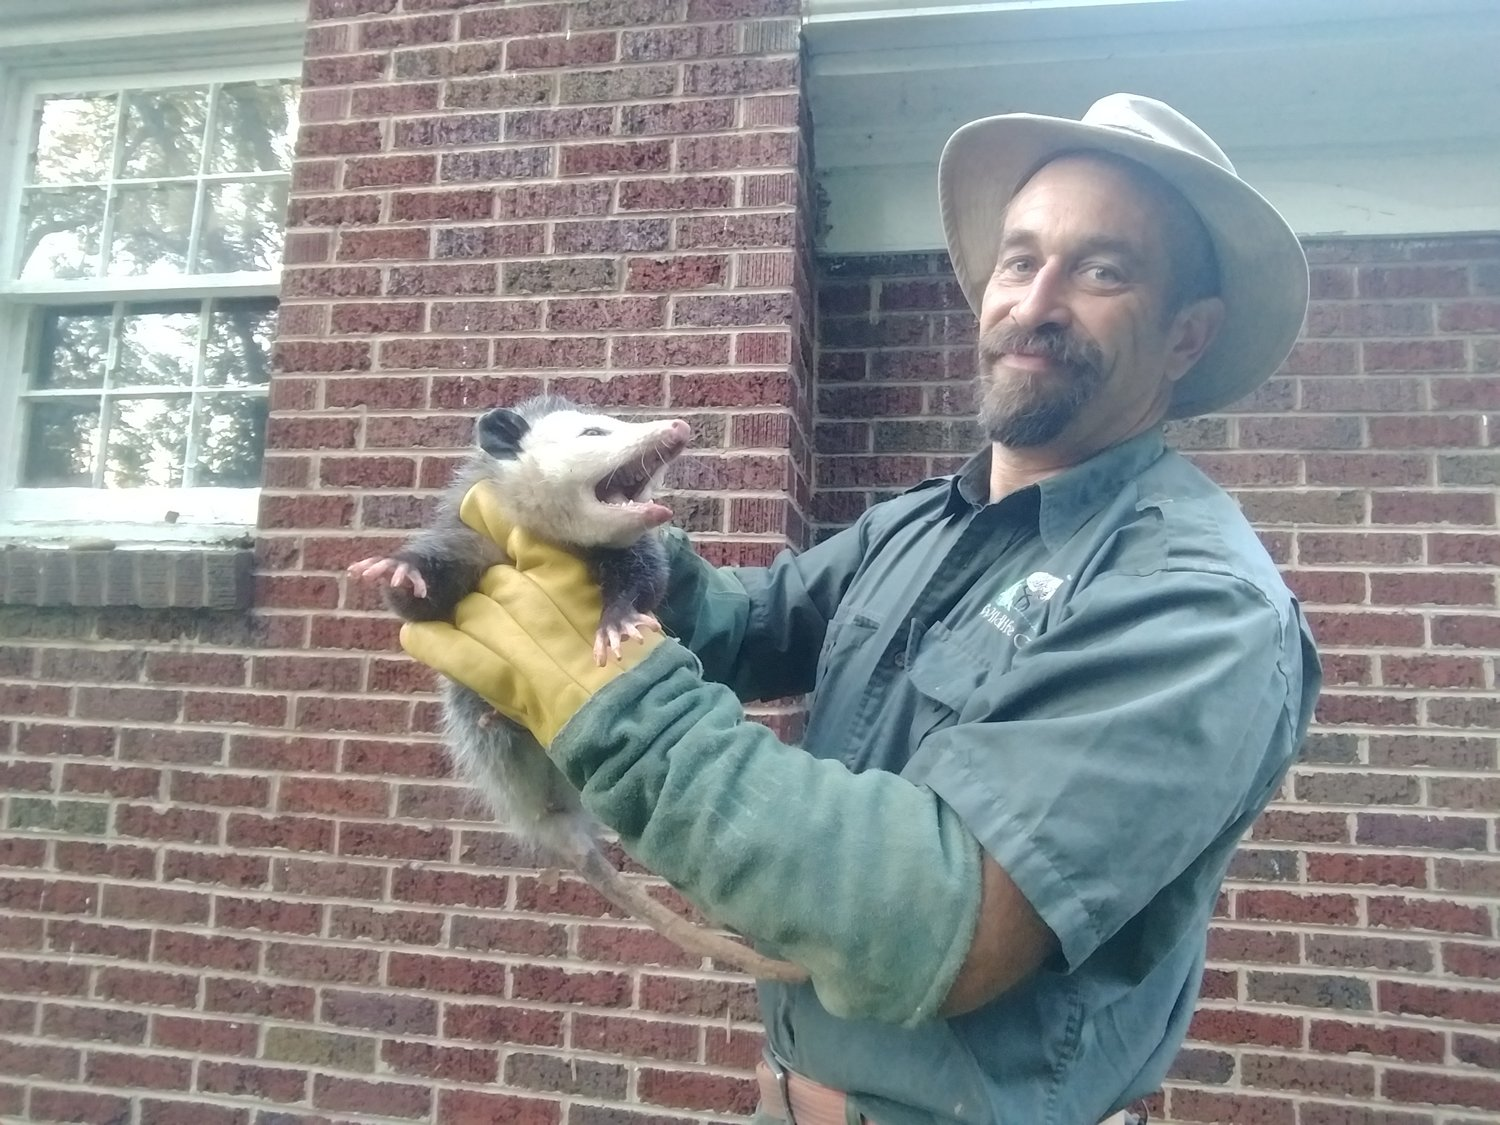 Kingsport Opossum Looks Back Out of Air Duct - a Confusing Wildlife